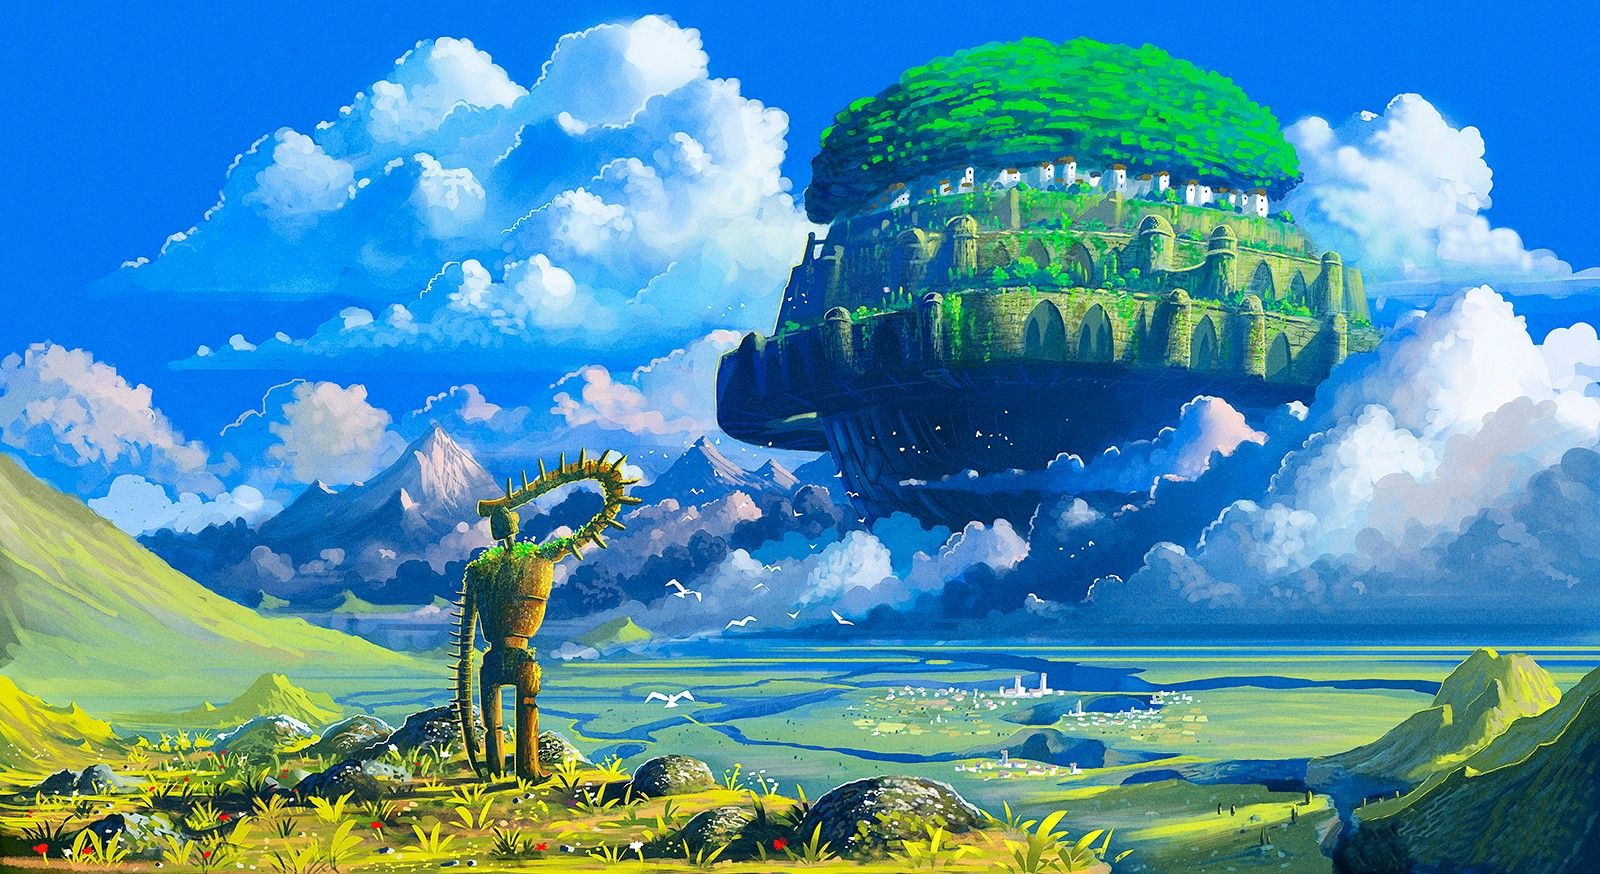 Studio Ghibli Castle In The Sky Robot Anime Floating Island Hd Wallpaper Desktop Background Castle In The Sky Ghibli Art Fantasy Landscape